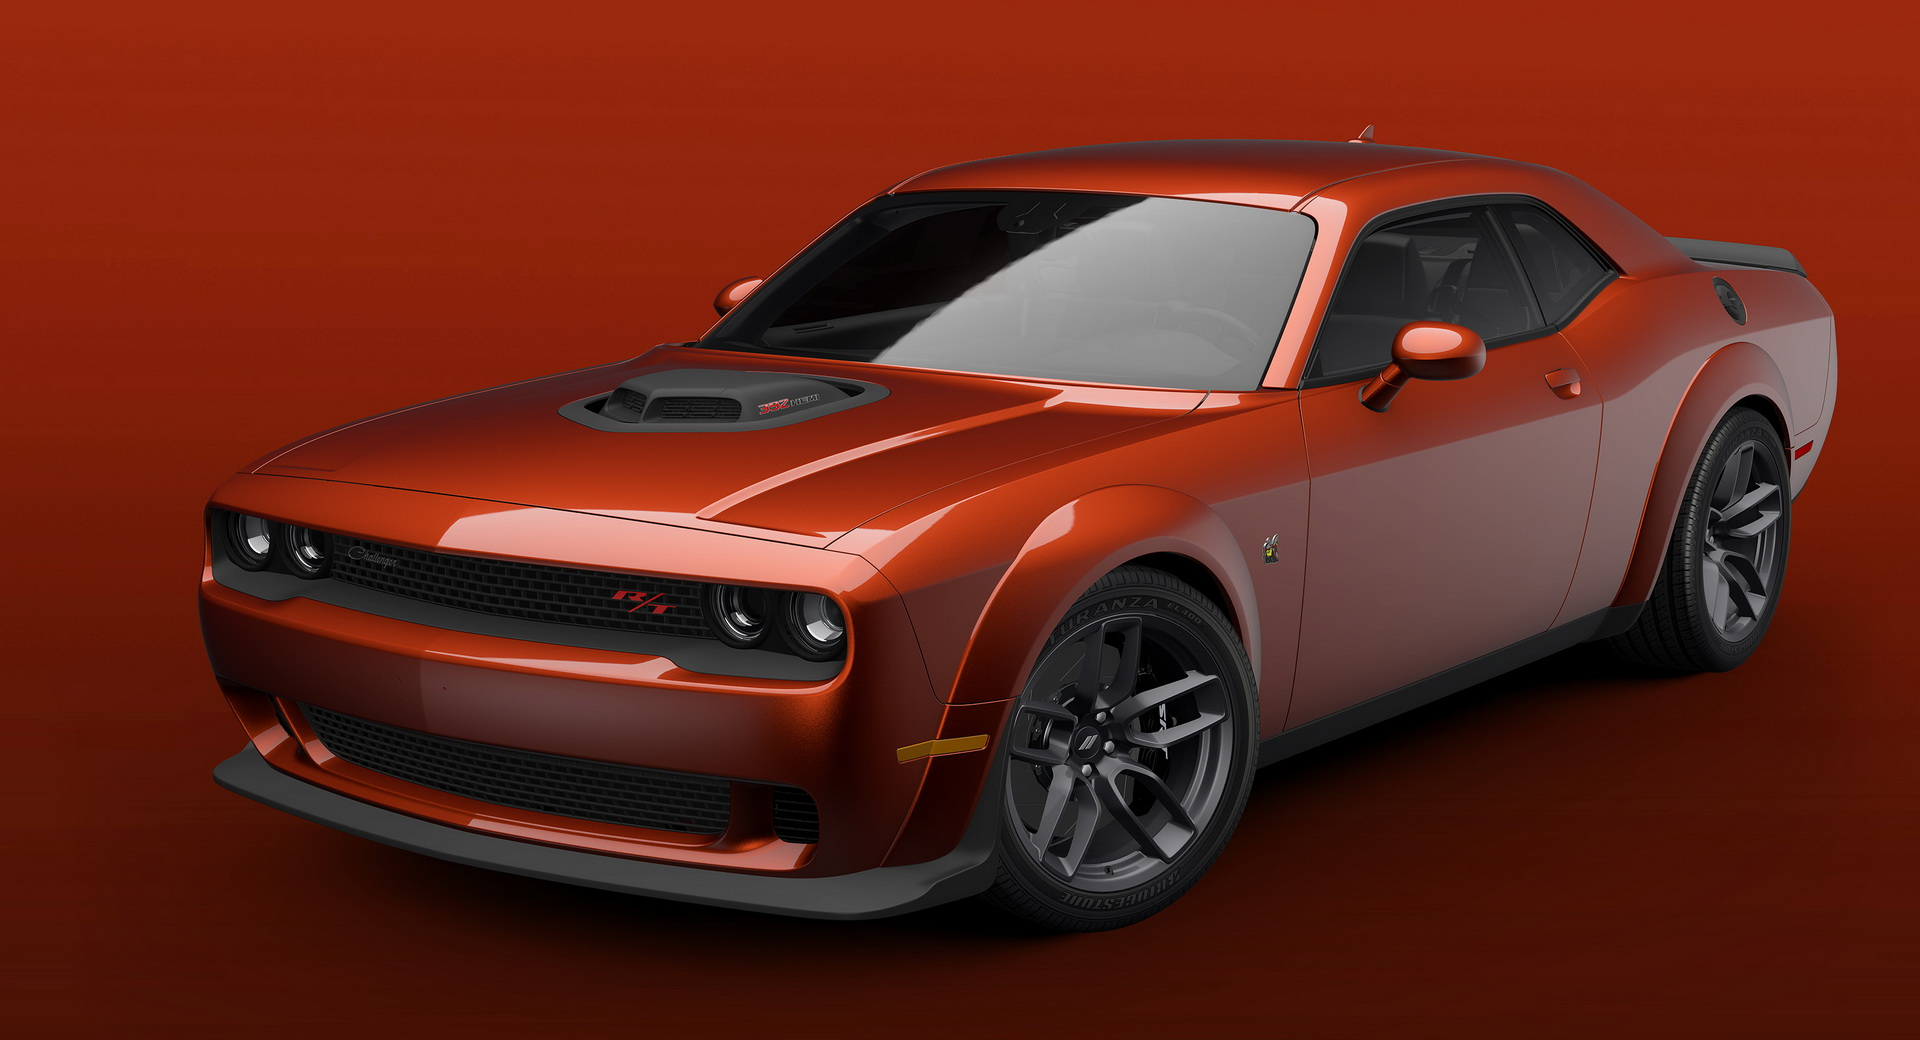 Dodge Challenger R/T Scat Pack Shaker Widebody 2021